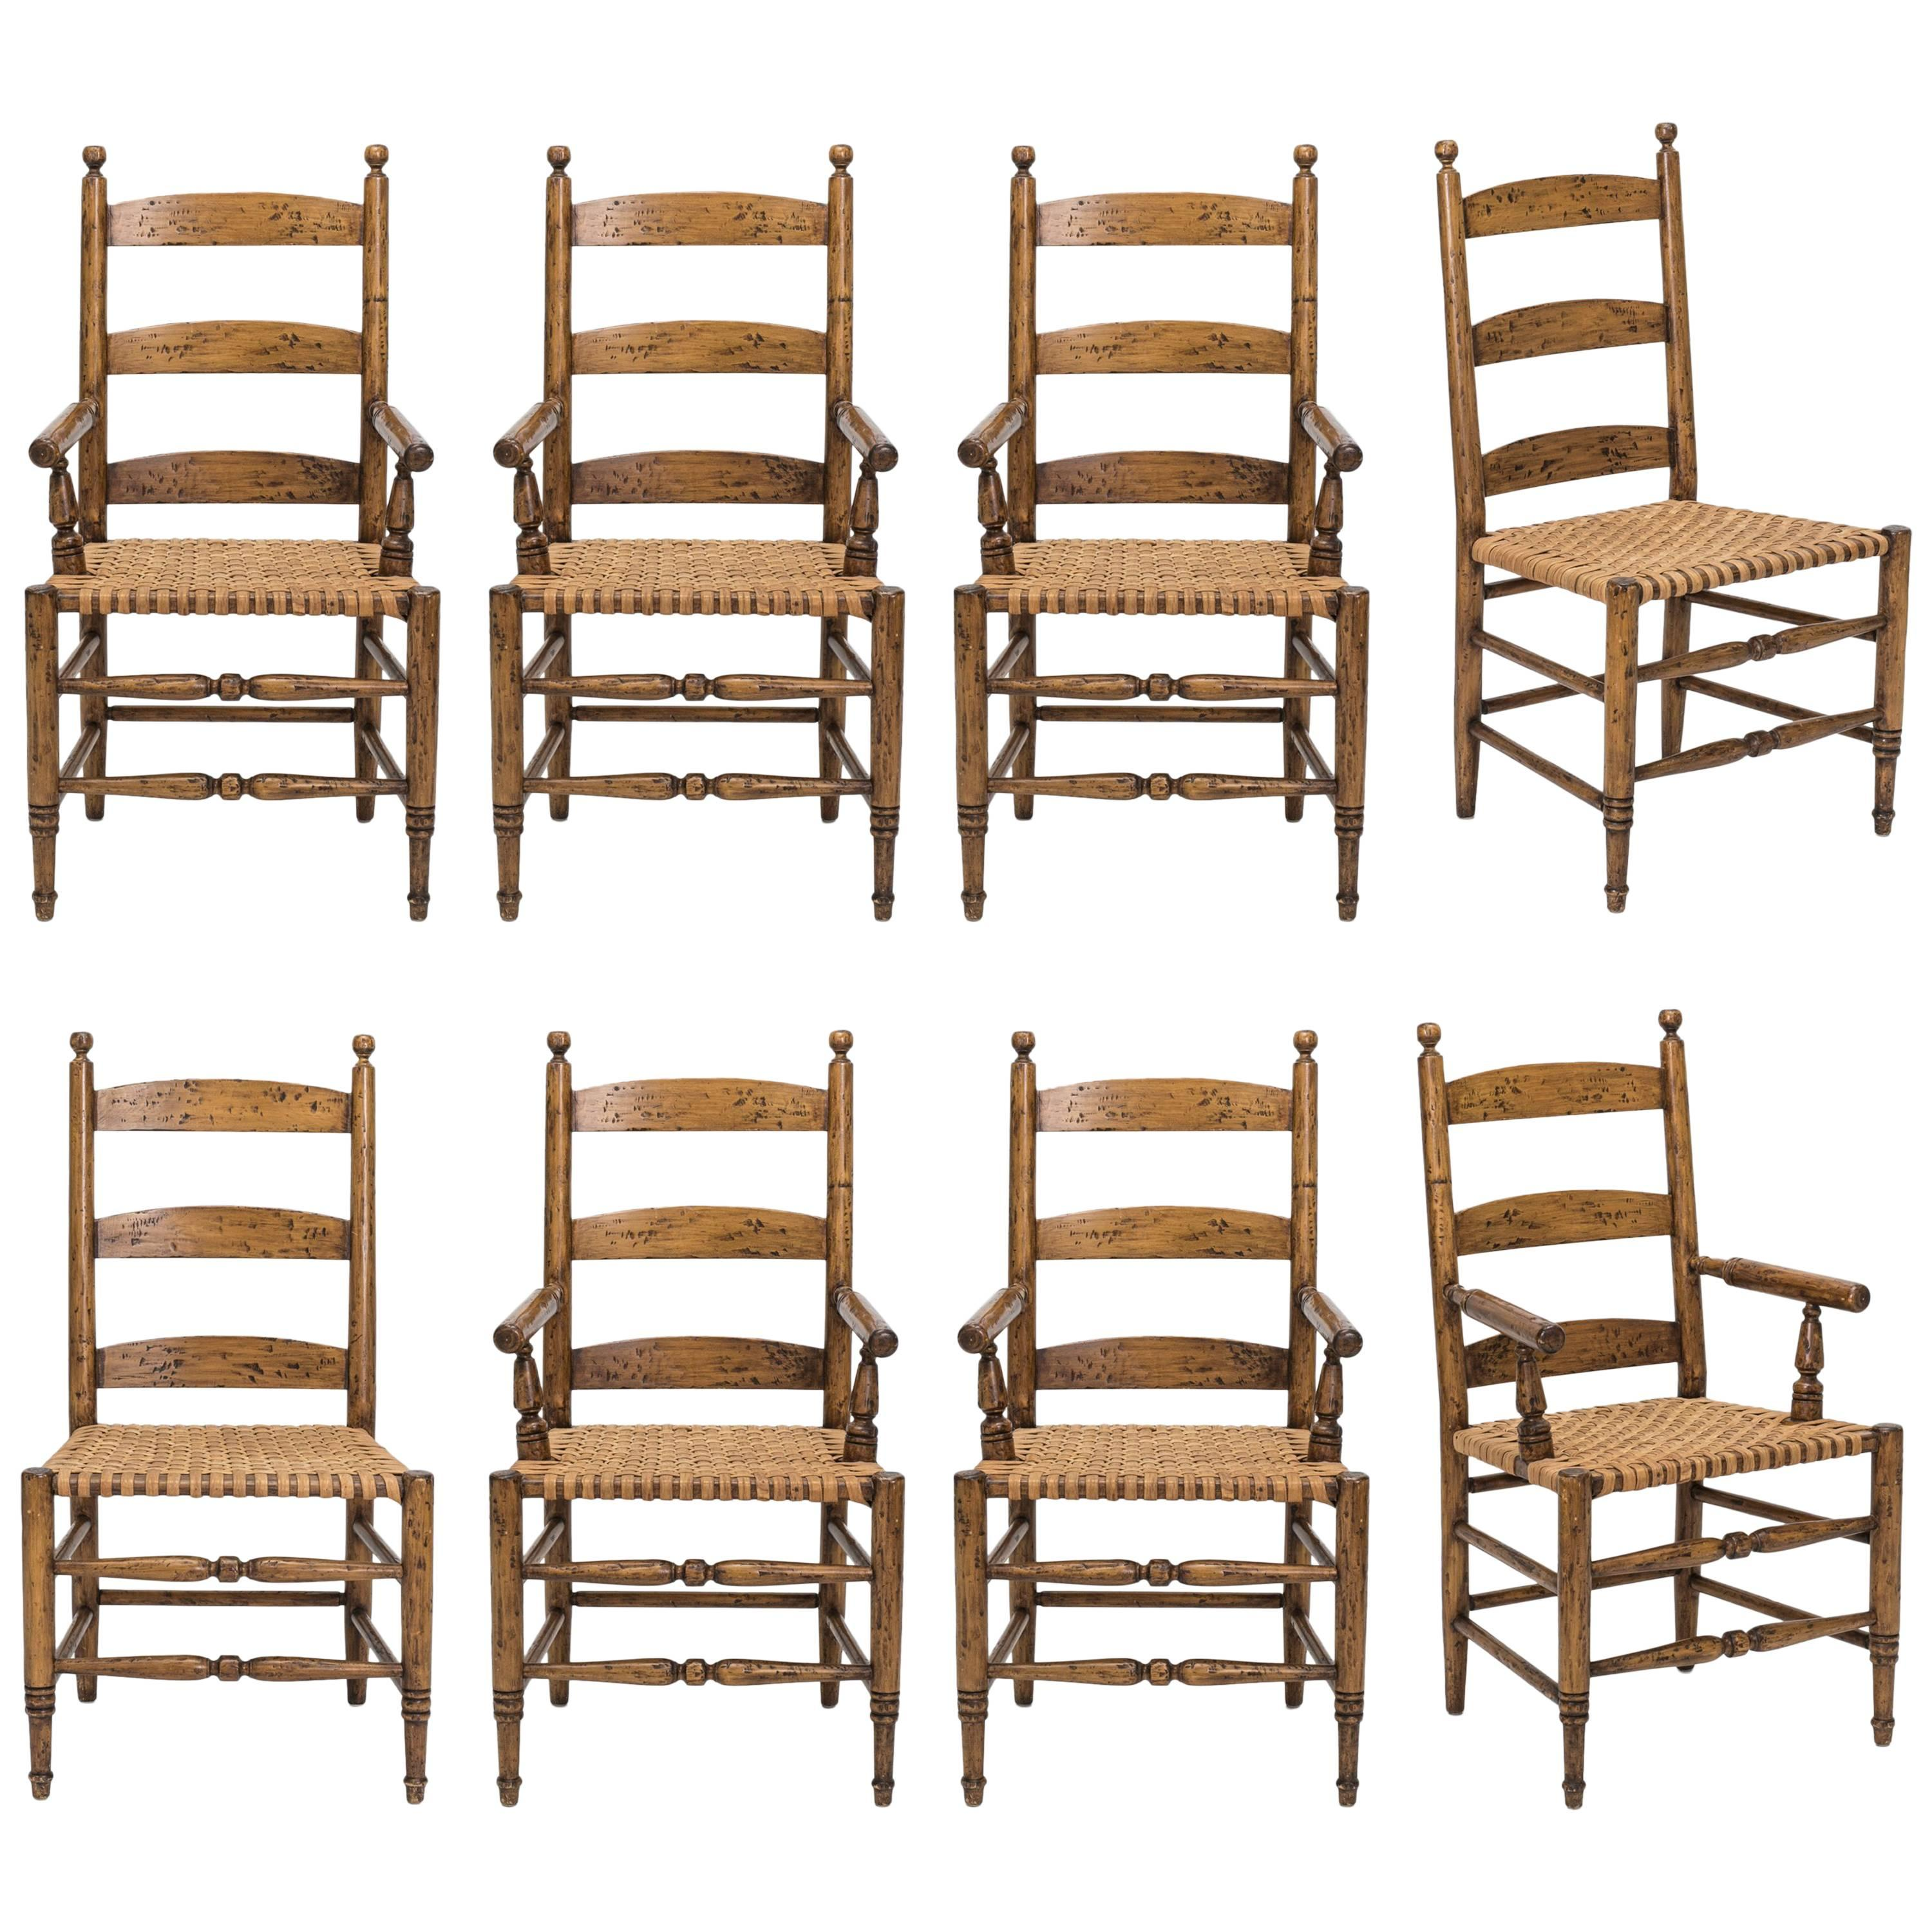 rush seat chairs folding guitar chair set 4 for sale at 1stdibs ladder back dining